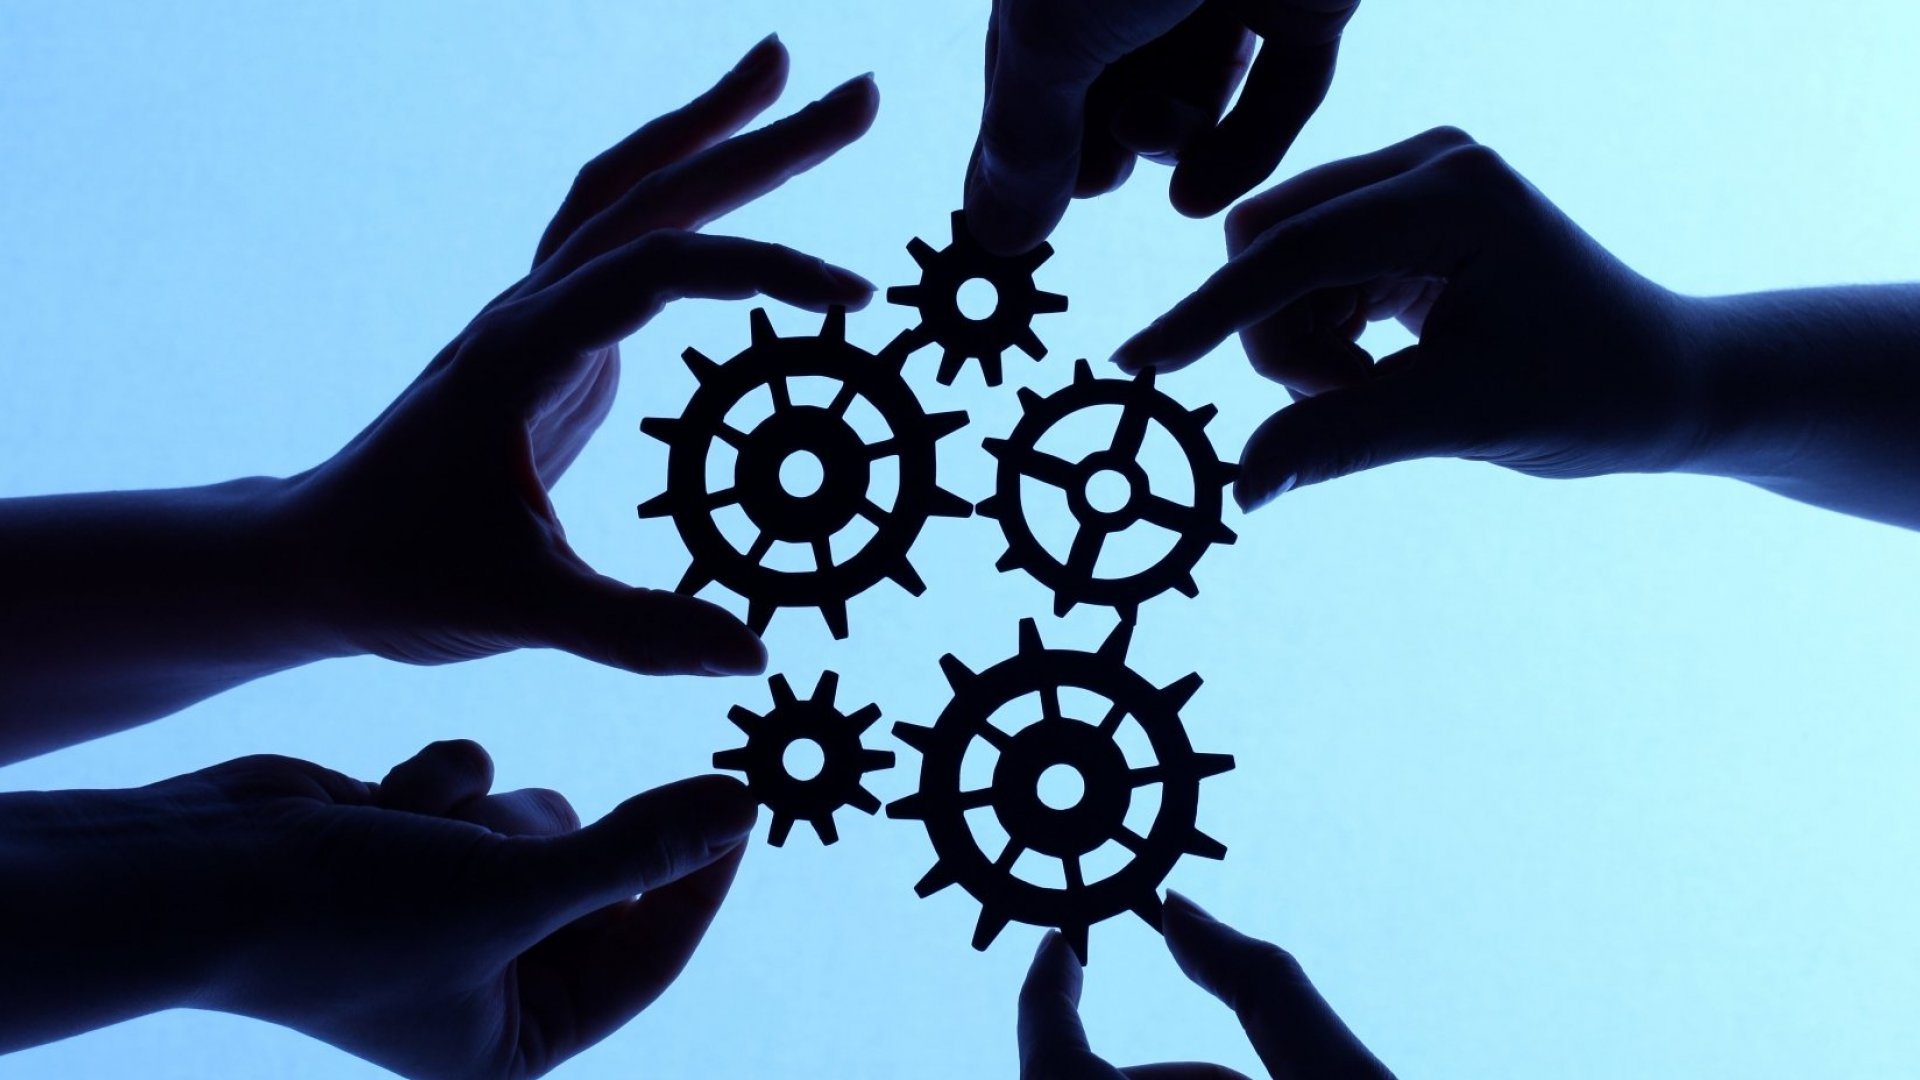 4 Simple, Highly Effective Ways to Align and Empower Senior Leaders